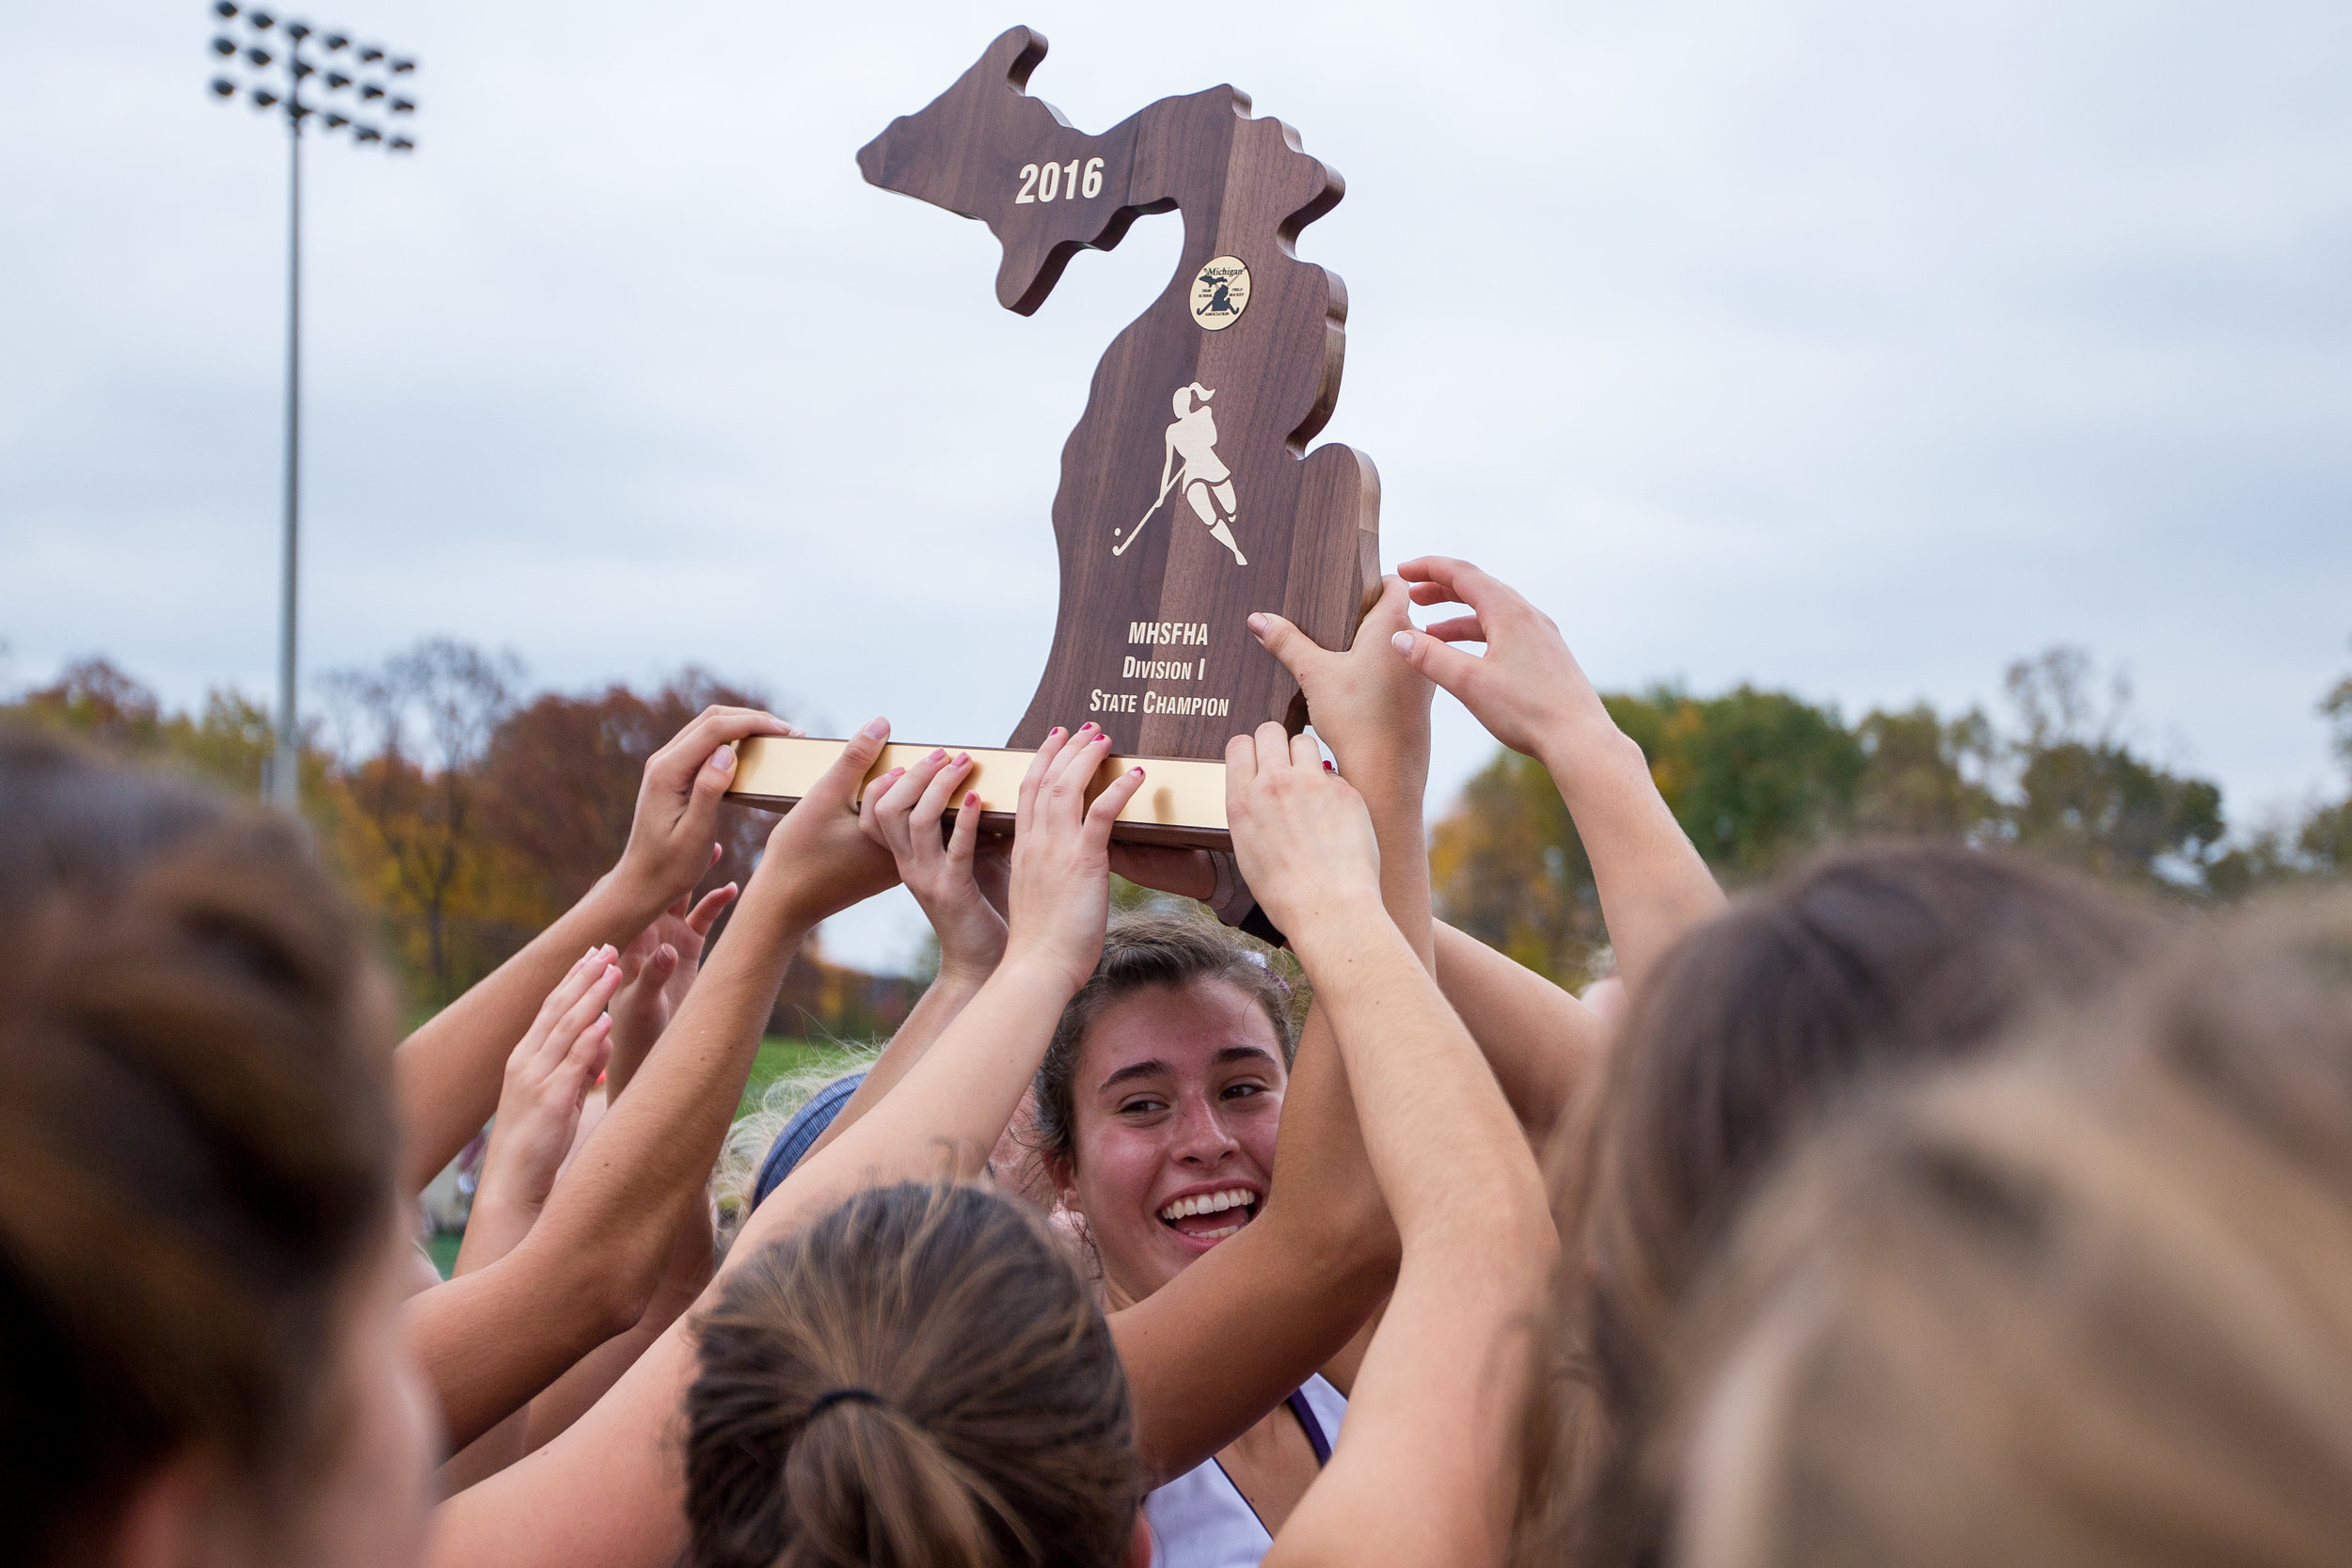 Players from Pioneer High School hold up the MHSFHA Division I State Championship trophy after their win in the D1 State Field Hockey Championships against Dexter High School at Skyline High School on Saturday, October 29, 2016. Pioneer beat Dexter during seven-on-seven overtime.Matt Weigand | The Ann Arbor News